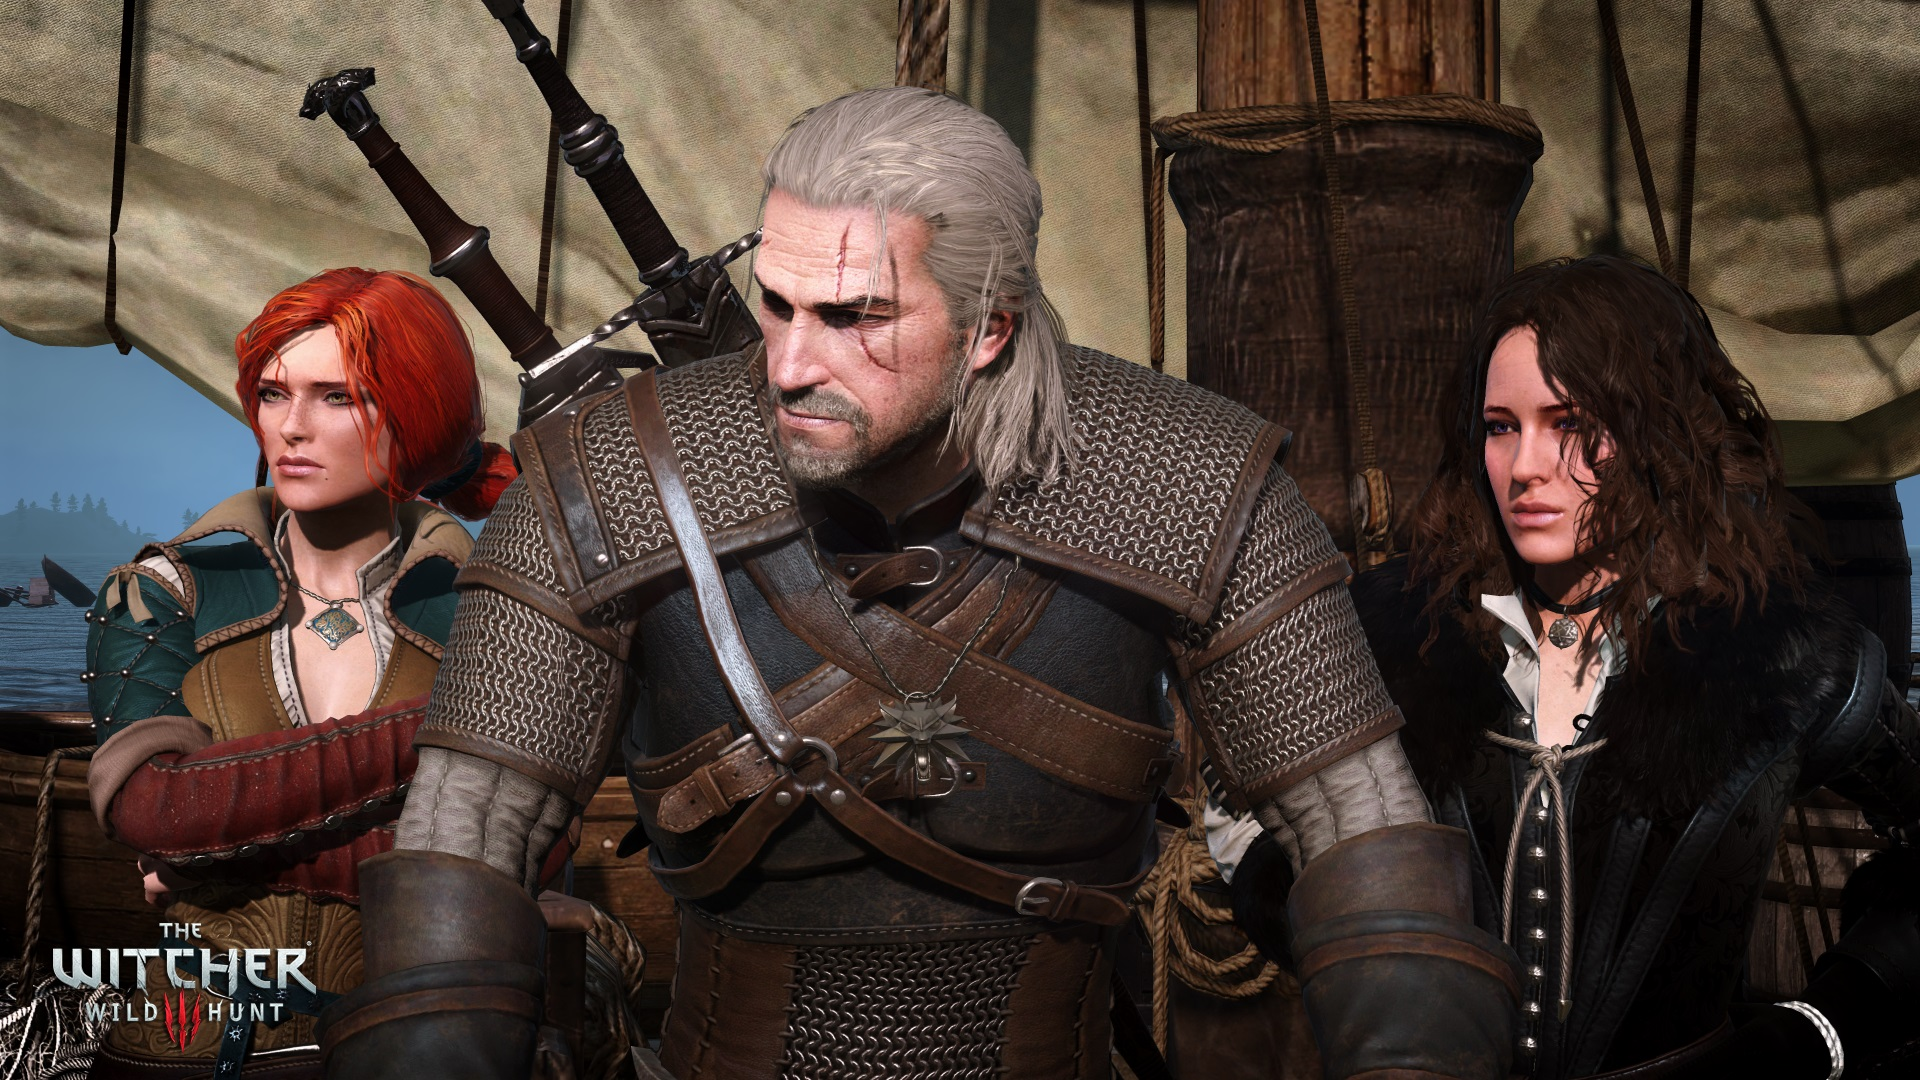 """The Witcher 3"" Comes With Thank You Letter - A Sweet Gesture for Supporting Their Work"